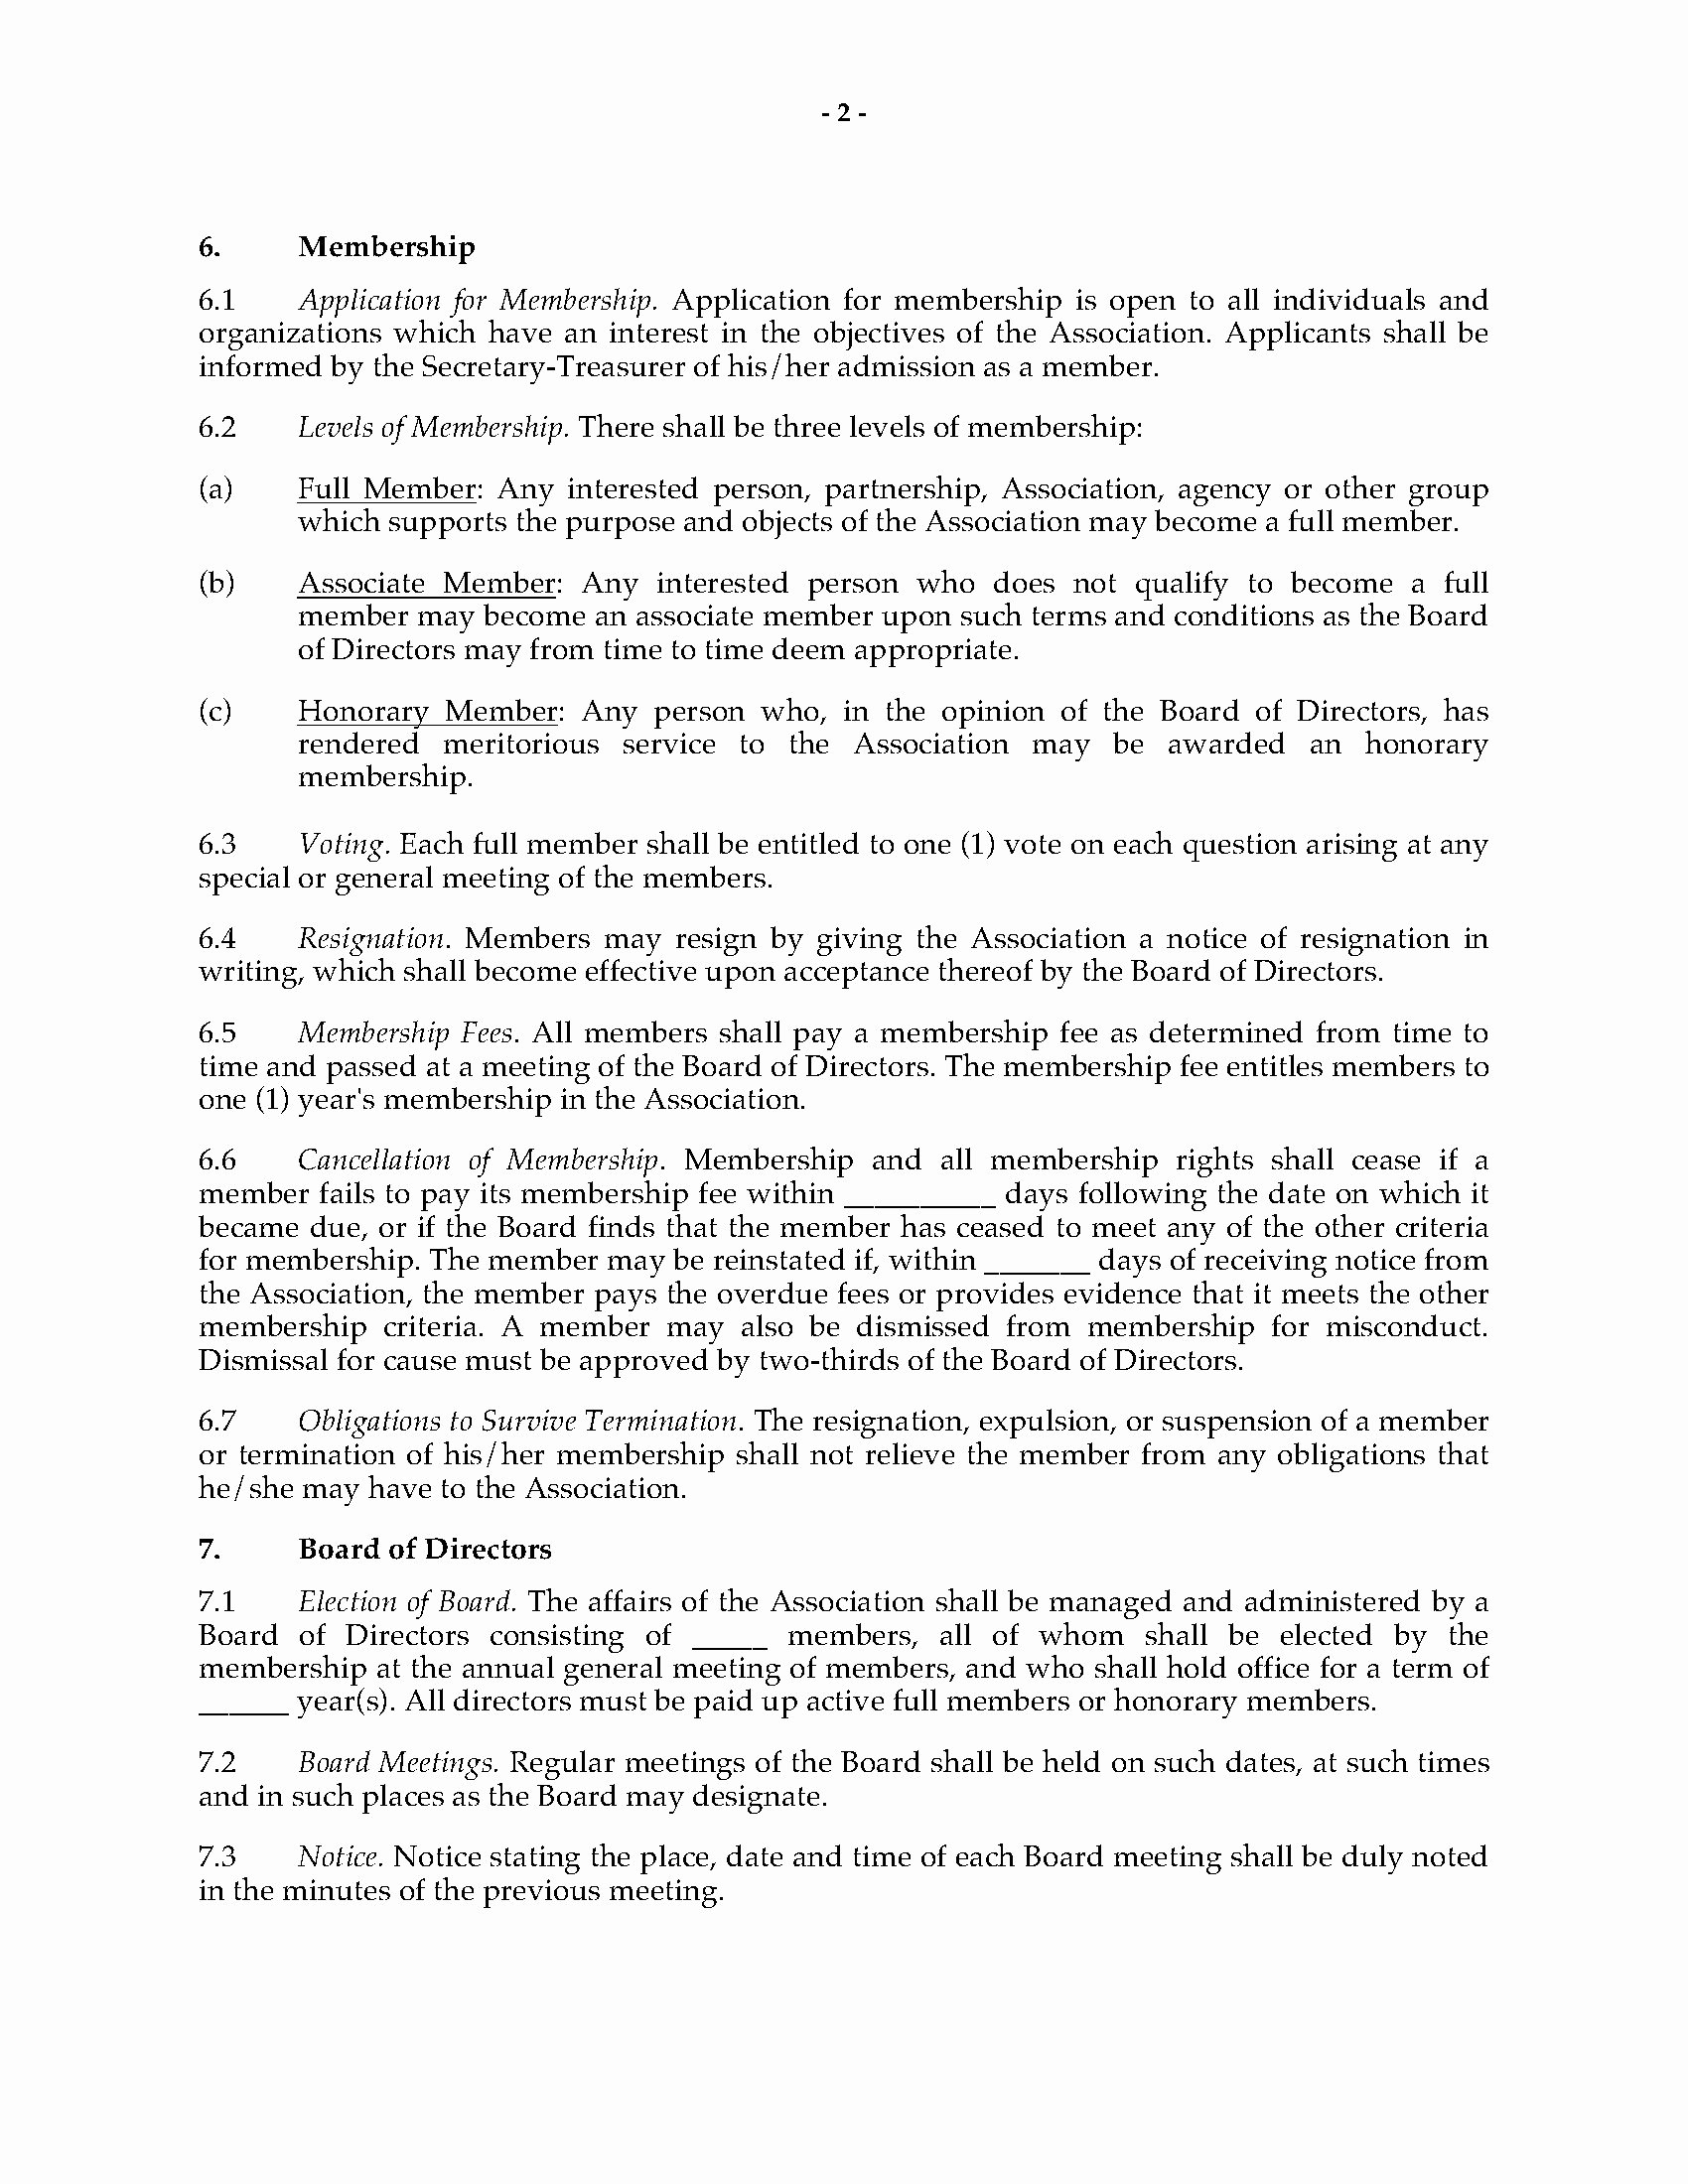 Texas bylaws Template Fresh Tario bylaws Of Non Profit Corporation